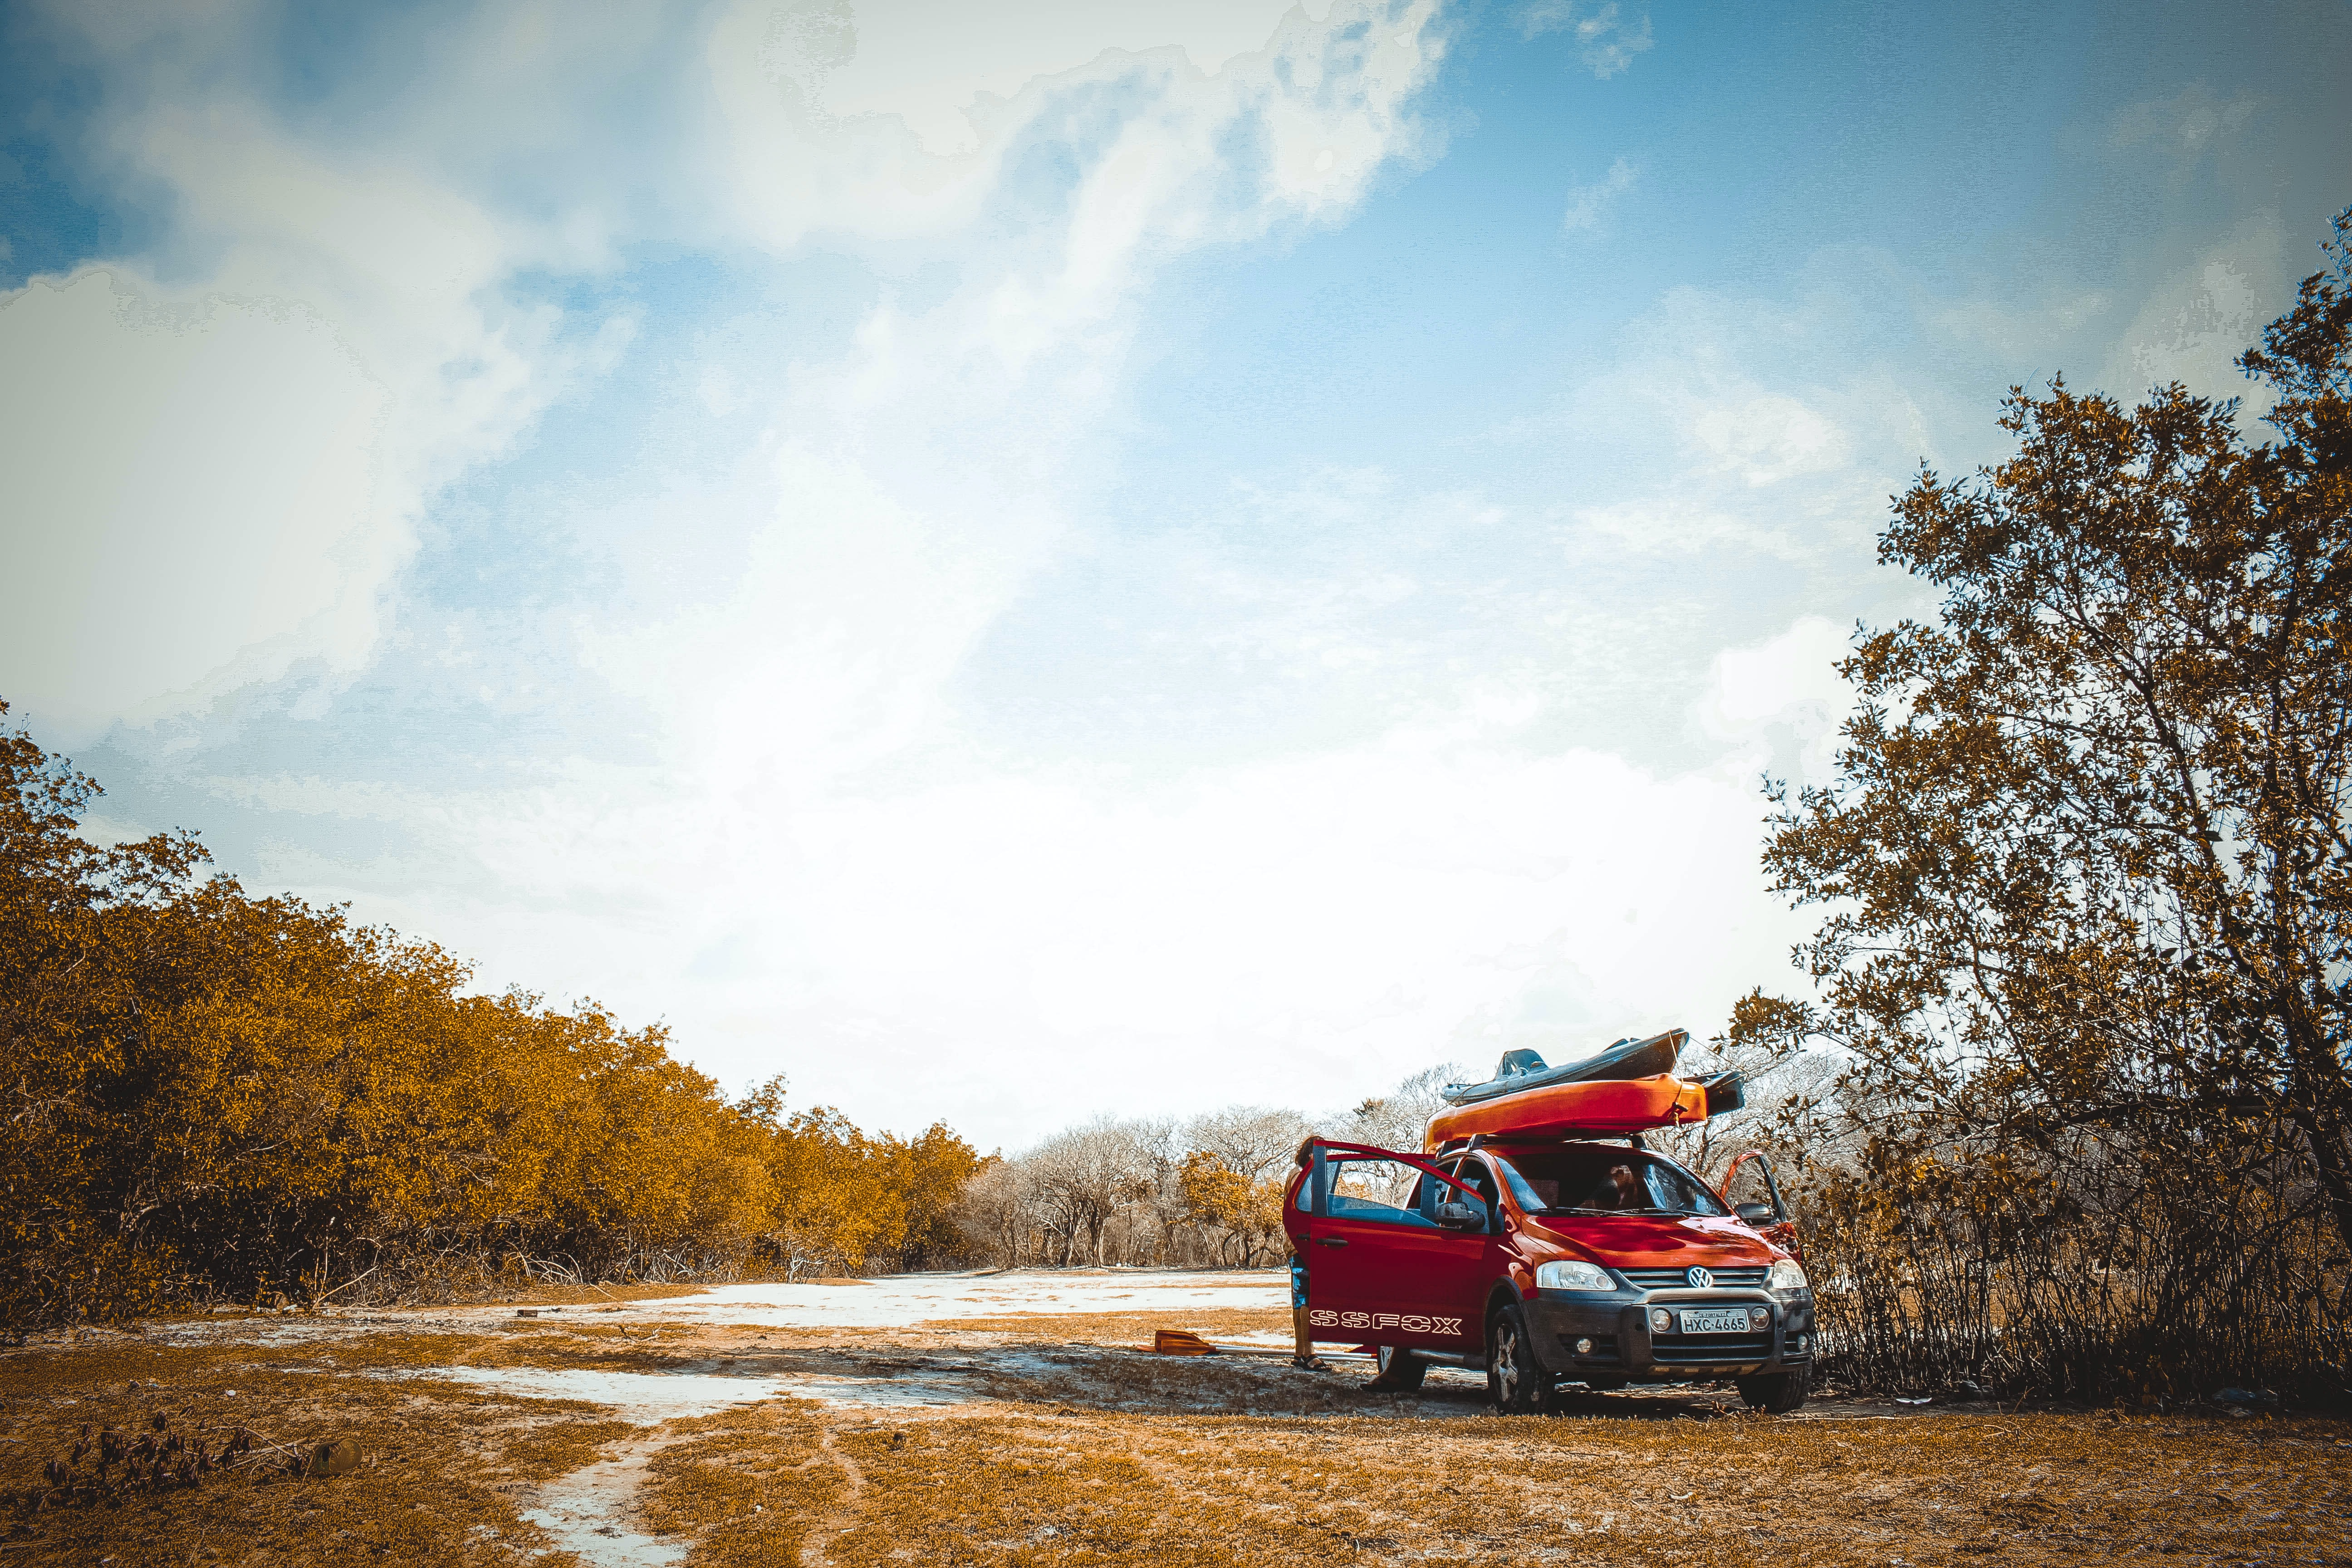 A red Volkswagen car with a kayak on top of it parked in the wilderness on an autumn's day